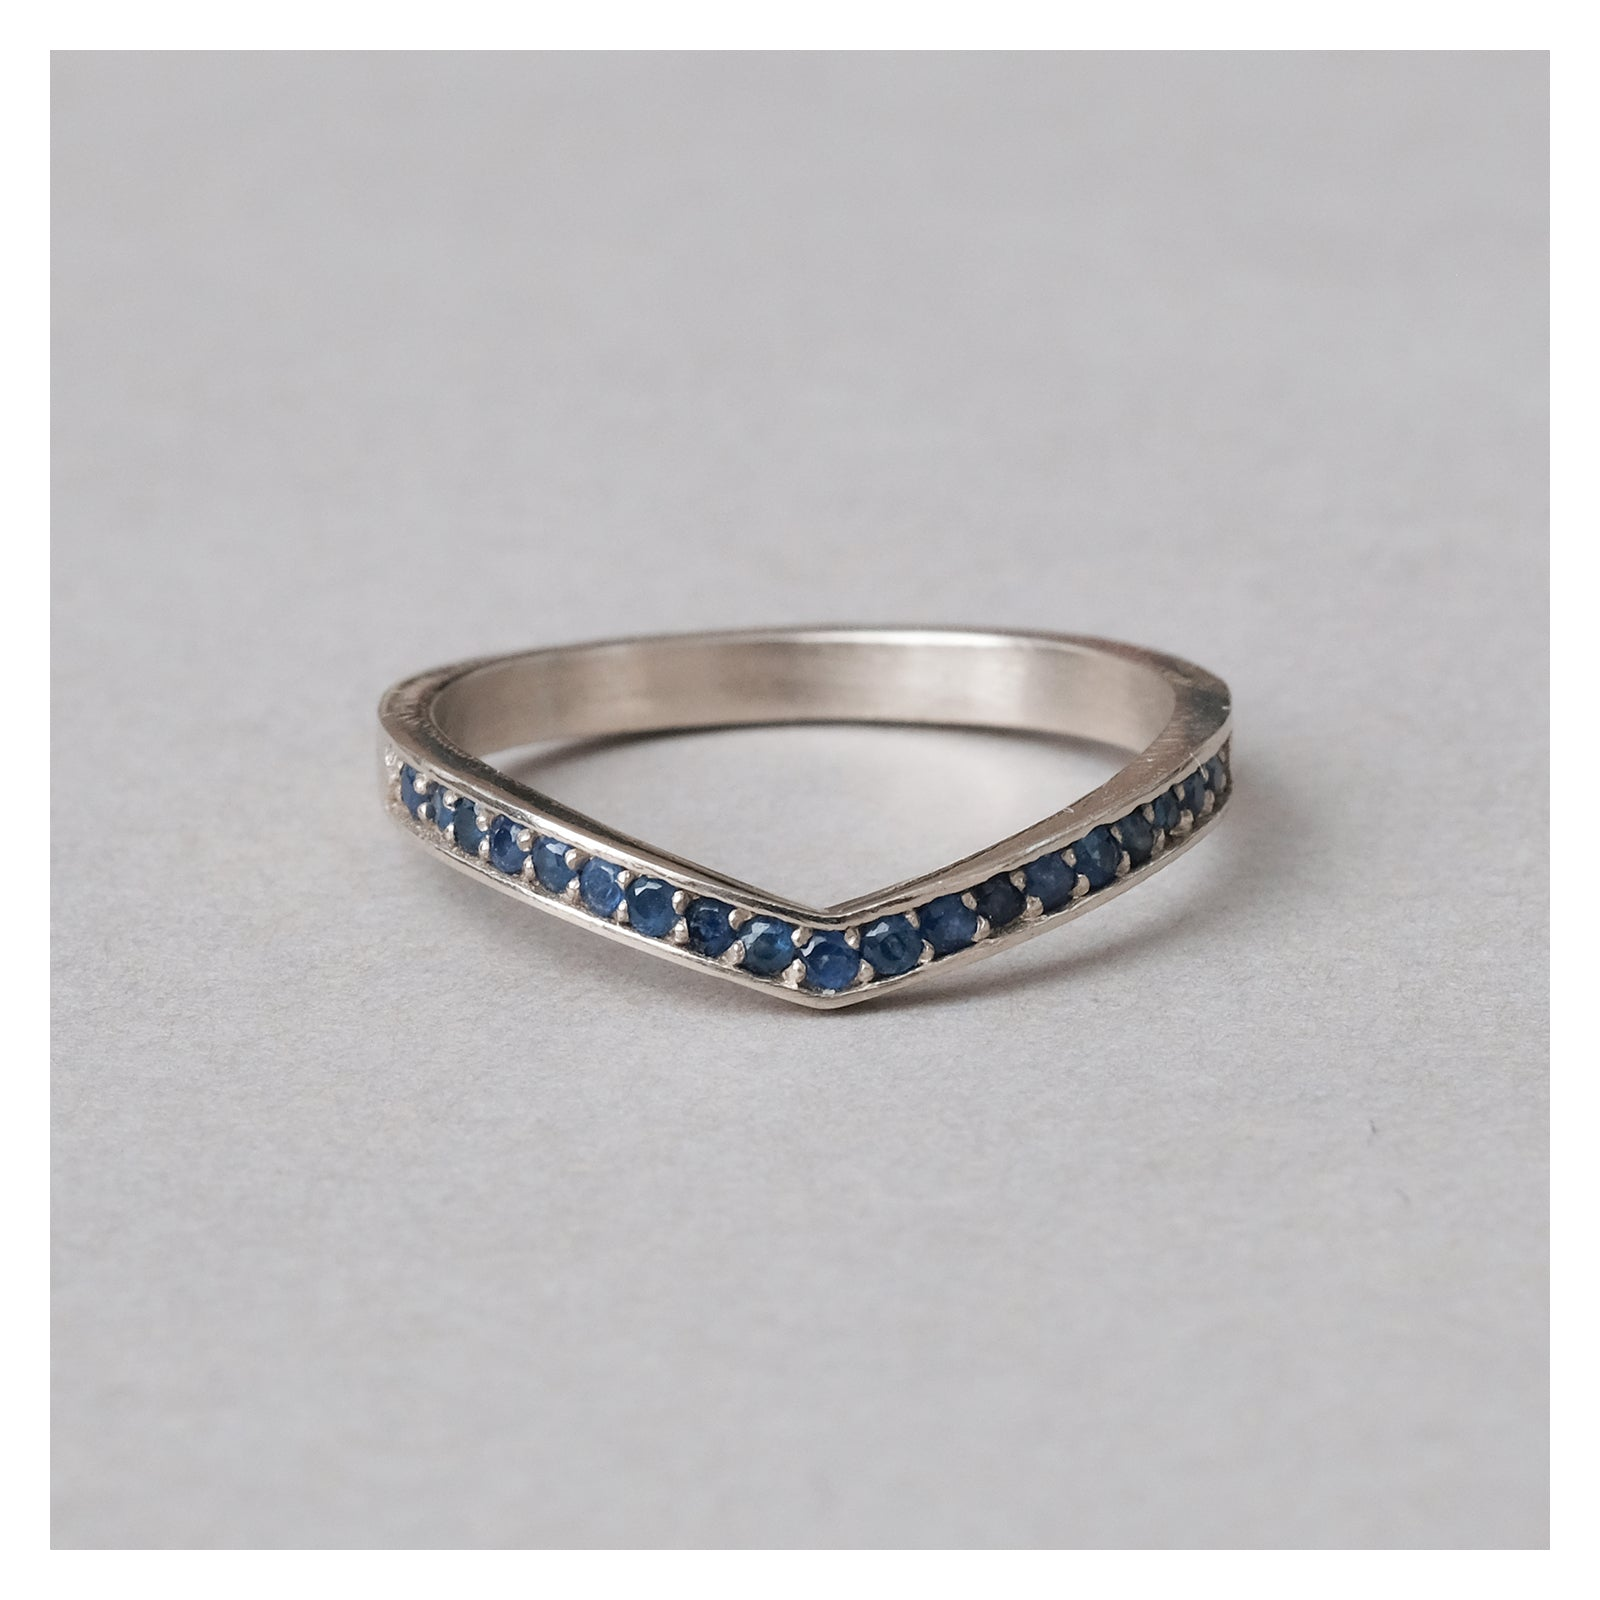 lou ring w/ sapphires